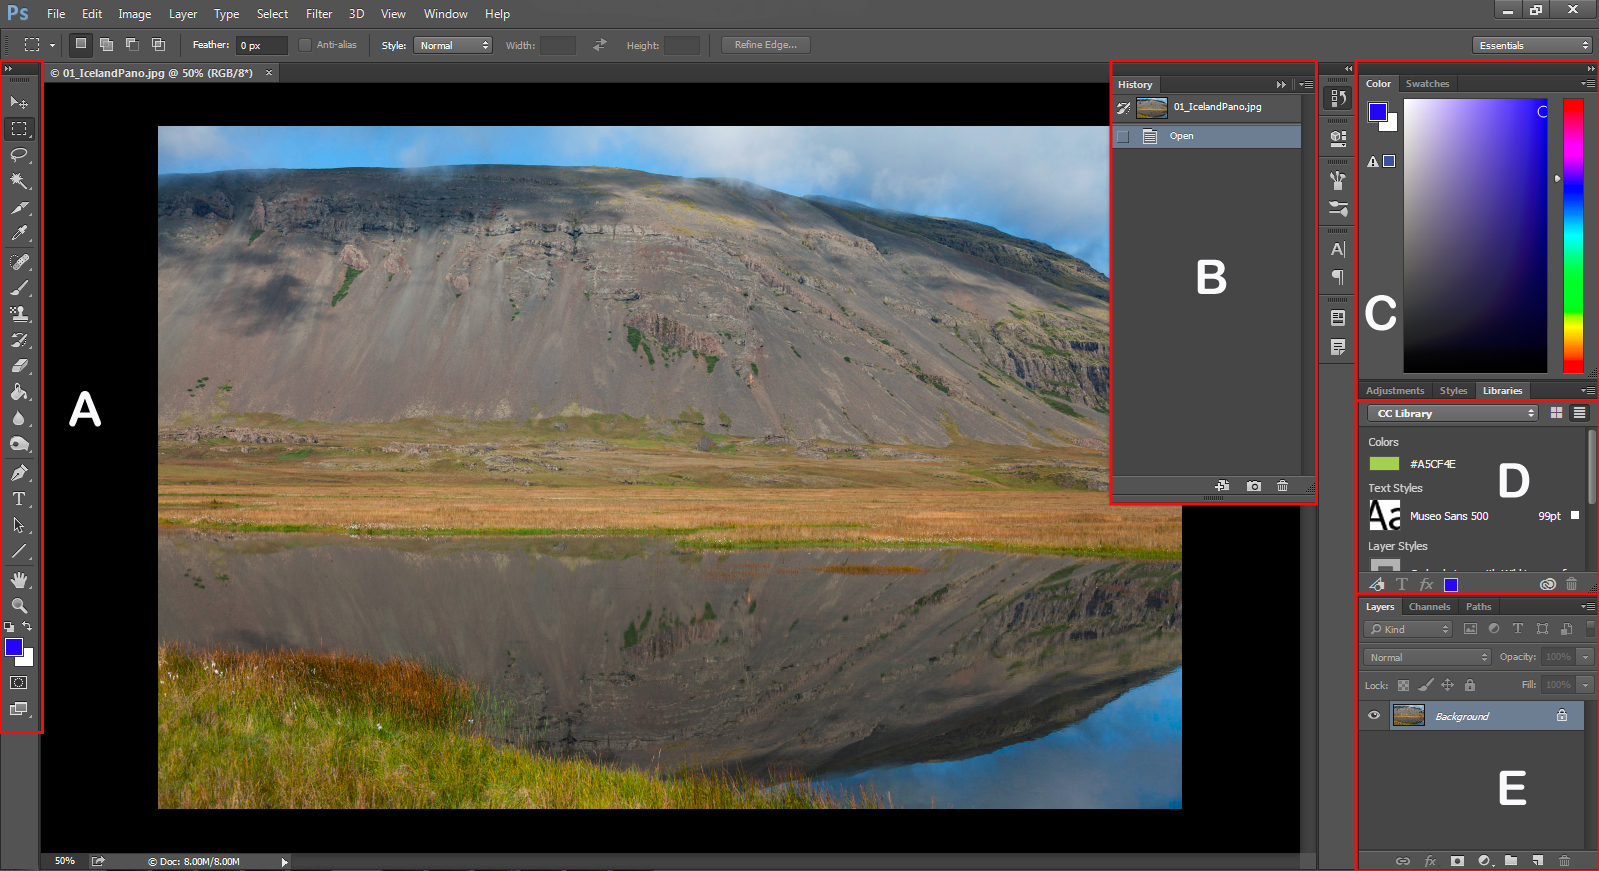 A first look at the Photoshop workspace